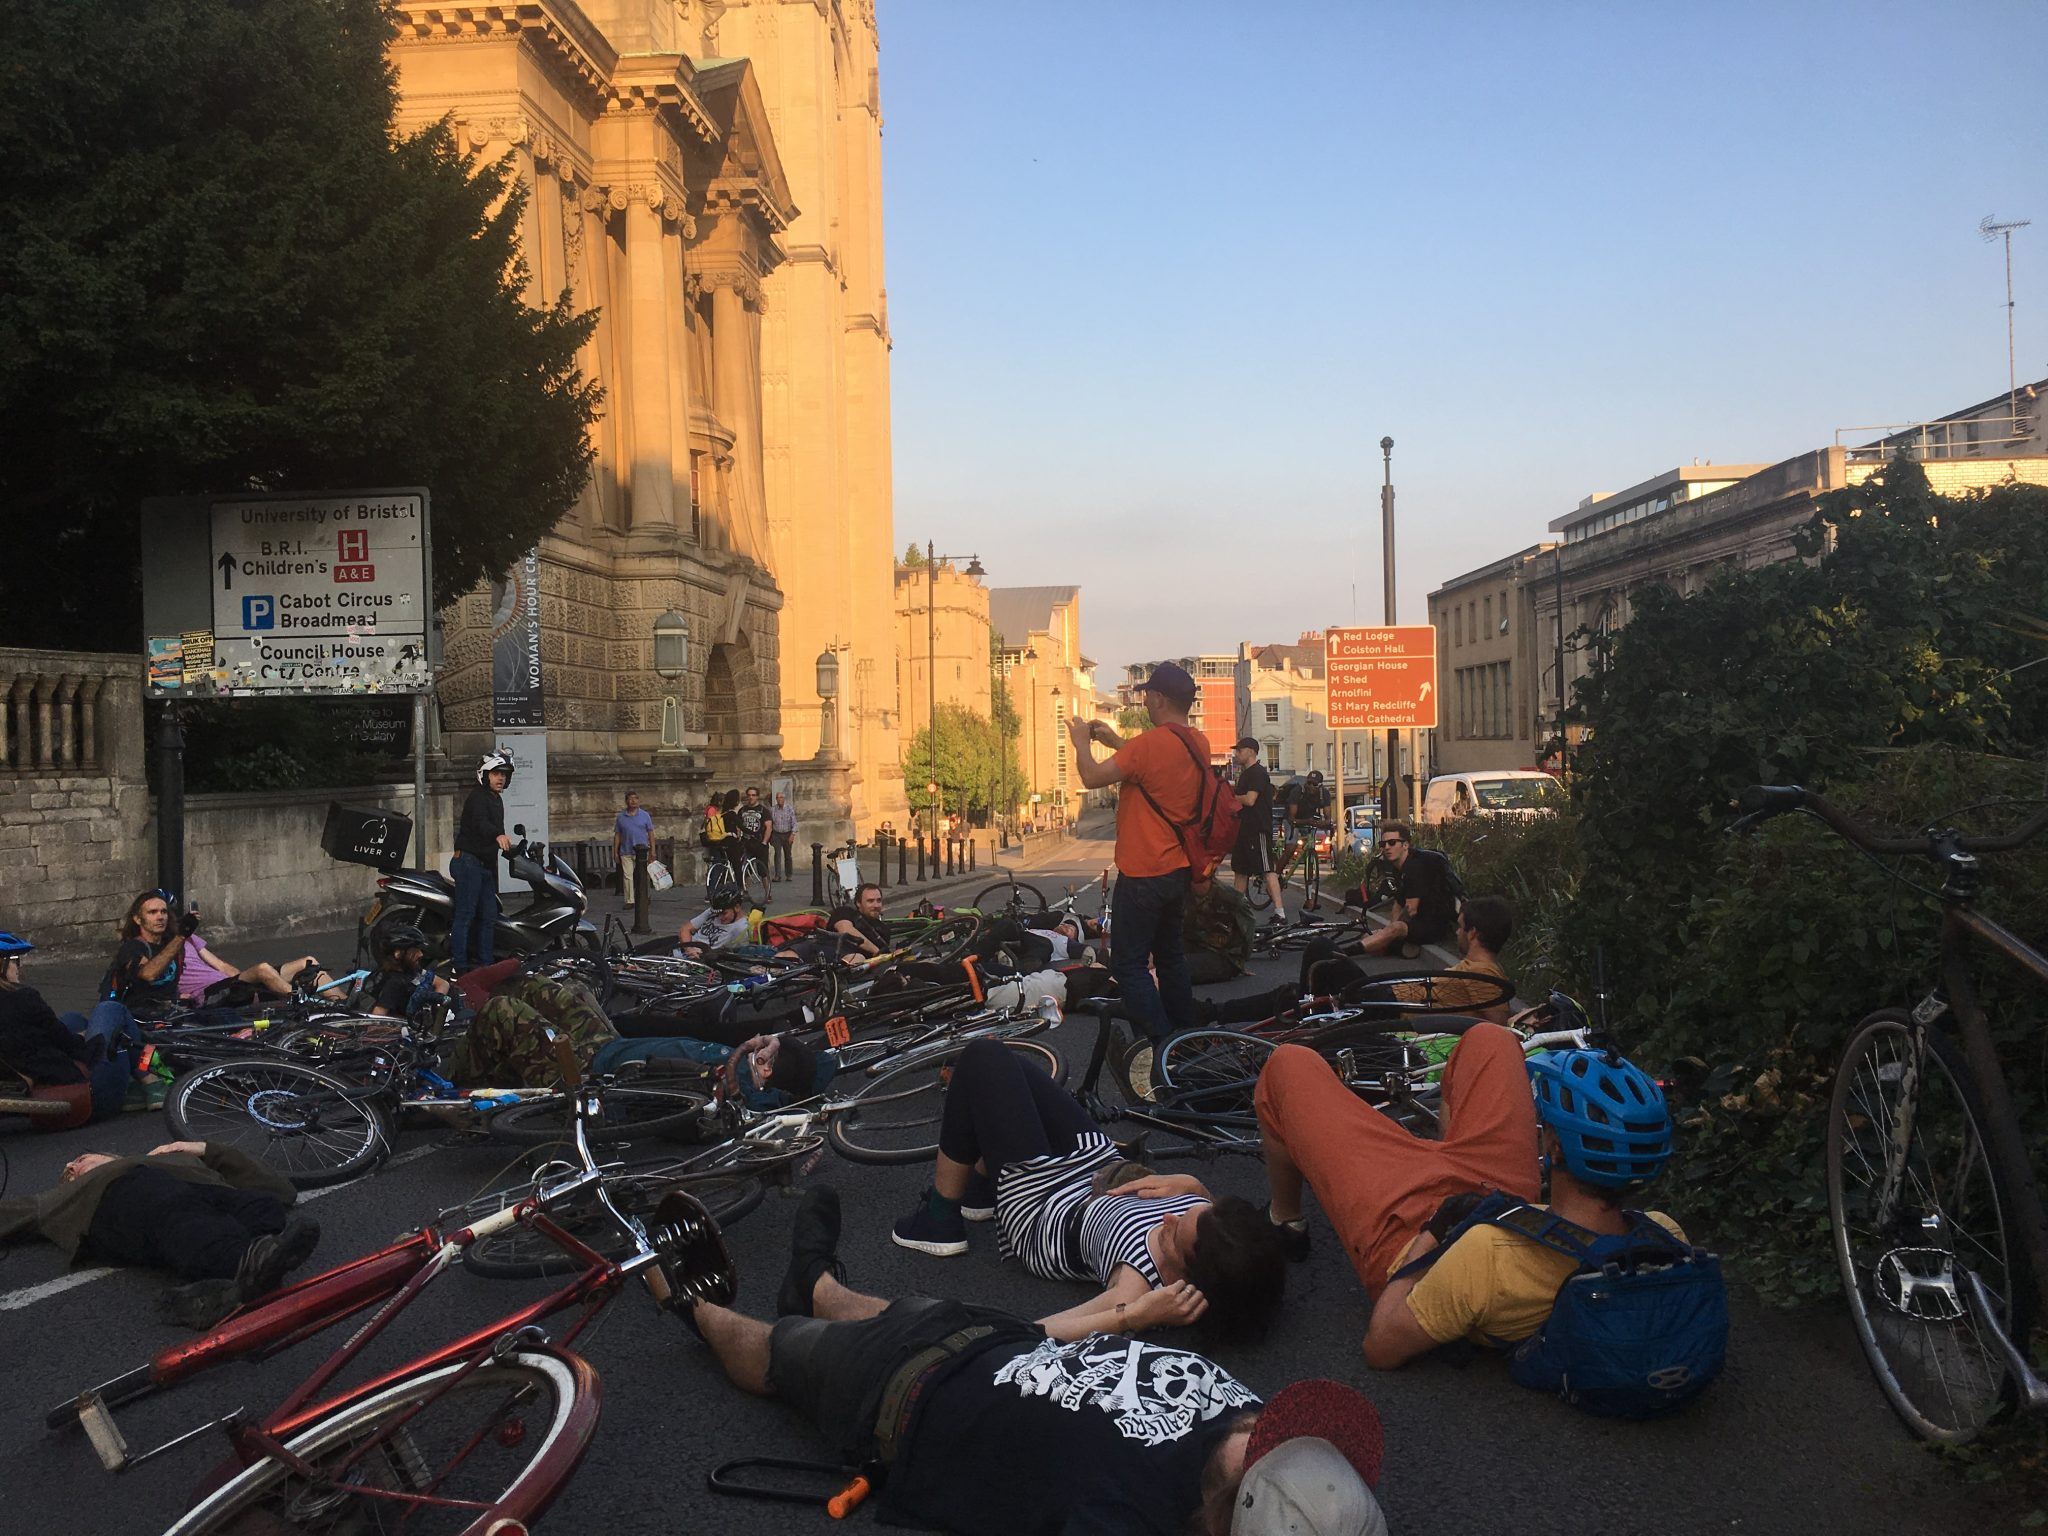 700+ cyclists injured on Bristol's roads in 2017  ...  1 prosecution for dangerous driving